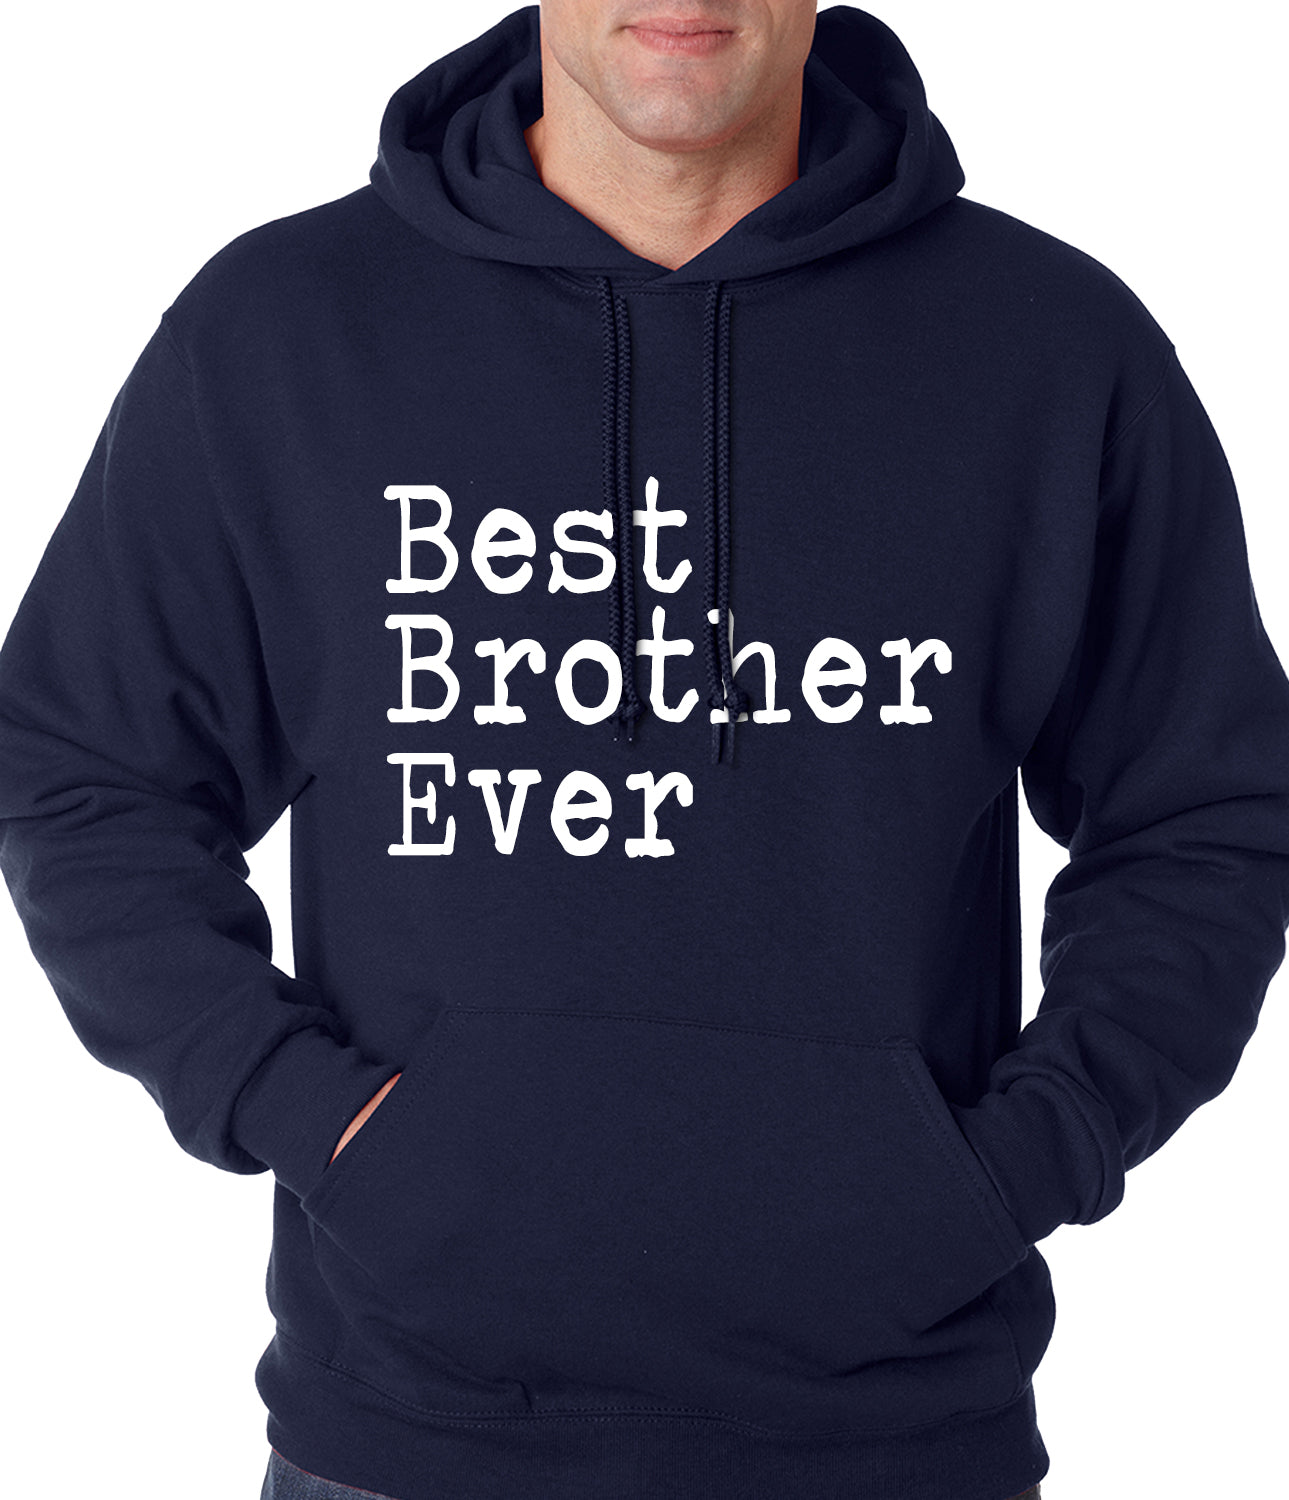 Best Brother Ever Adult Hoodie NavyBlue